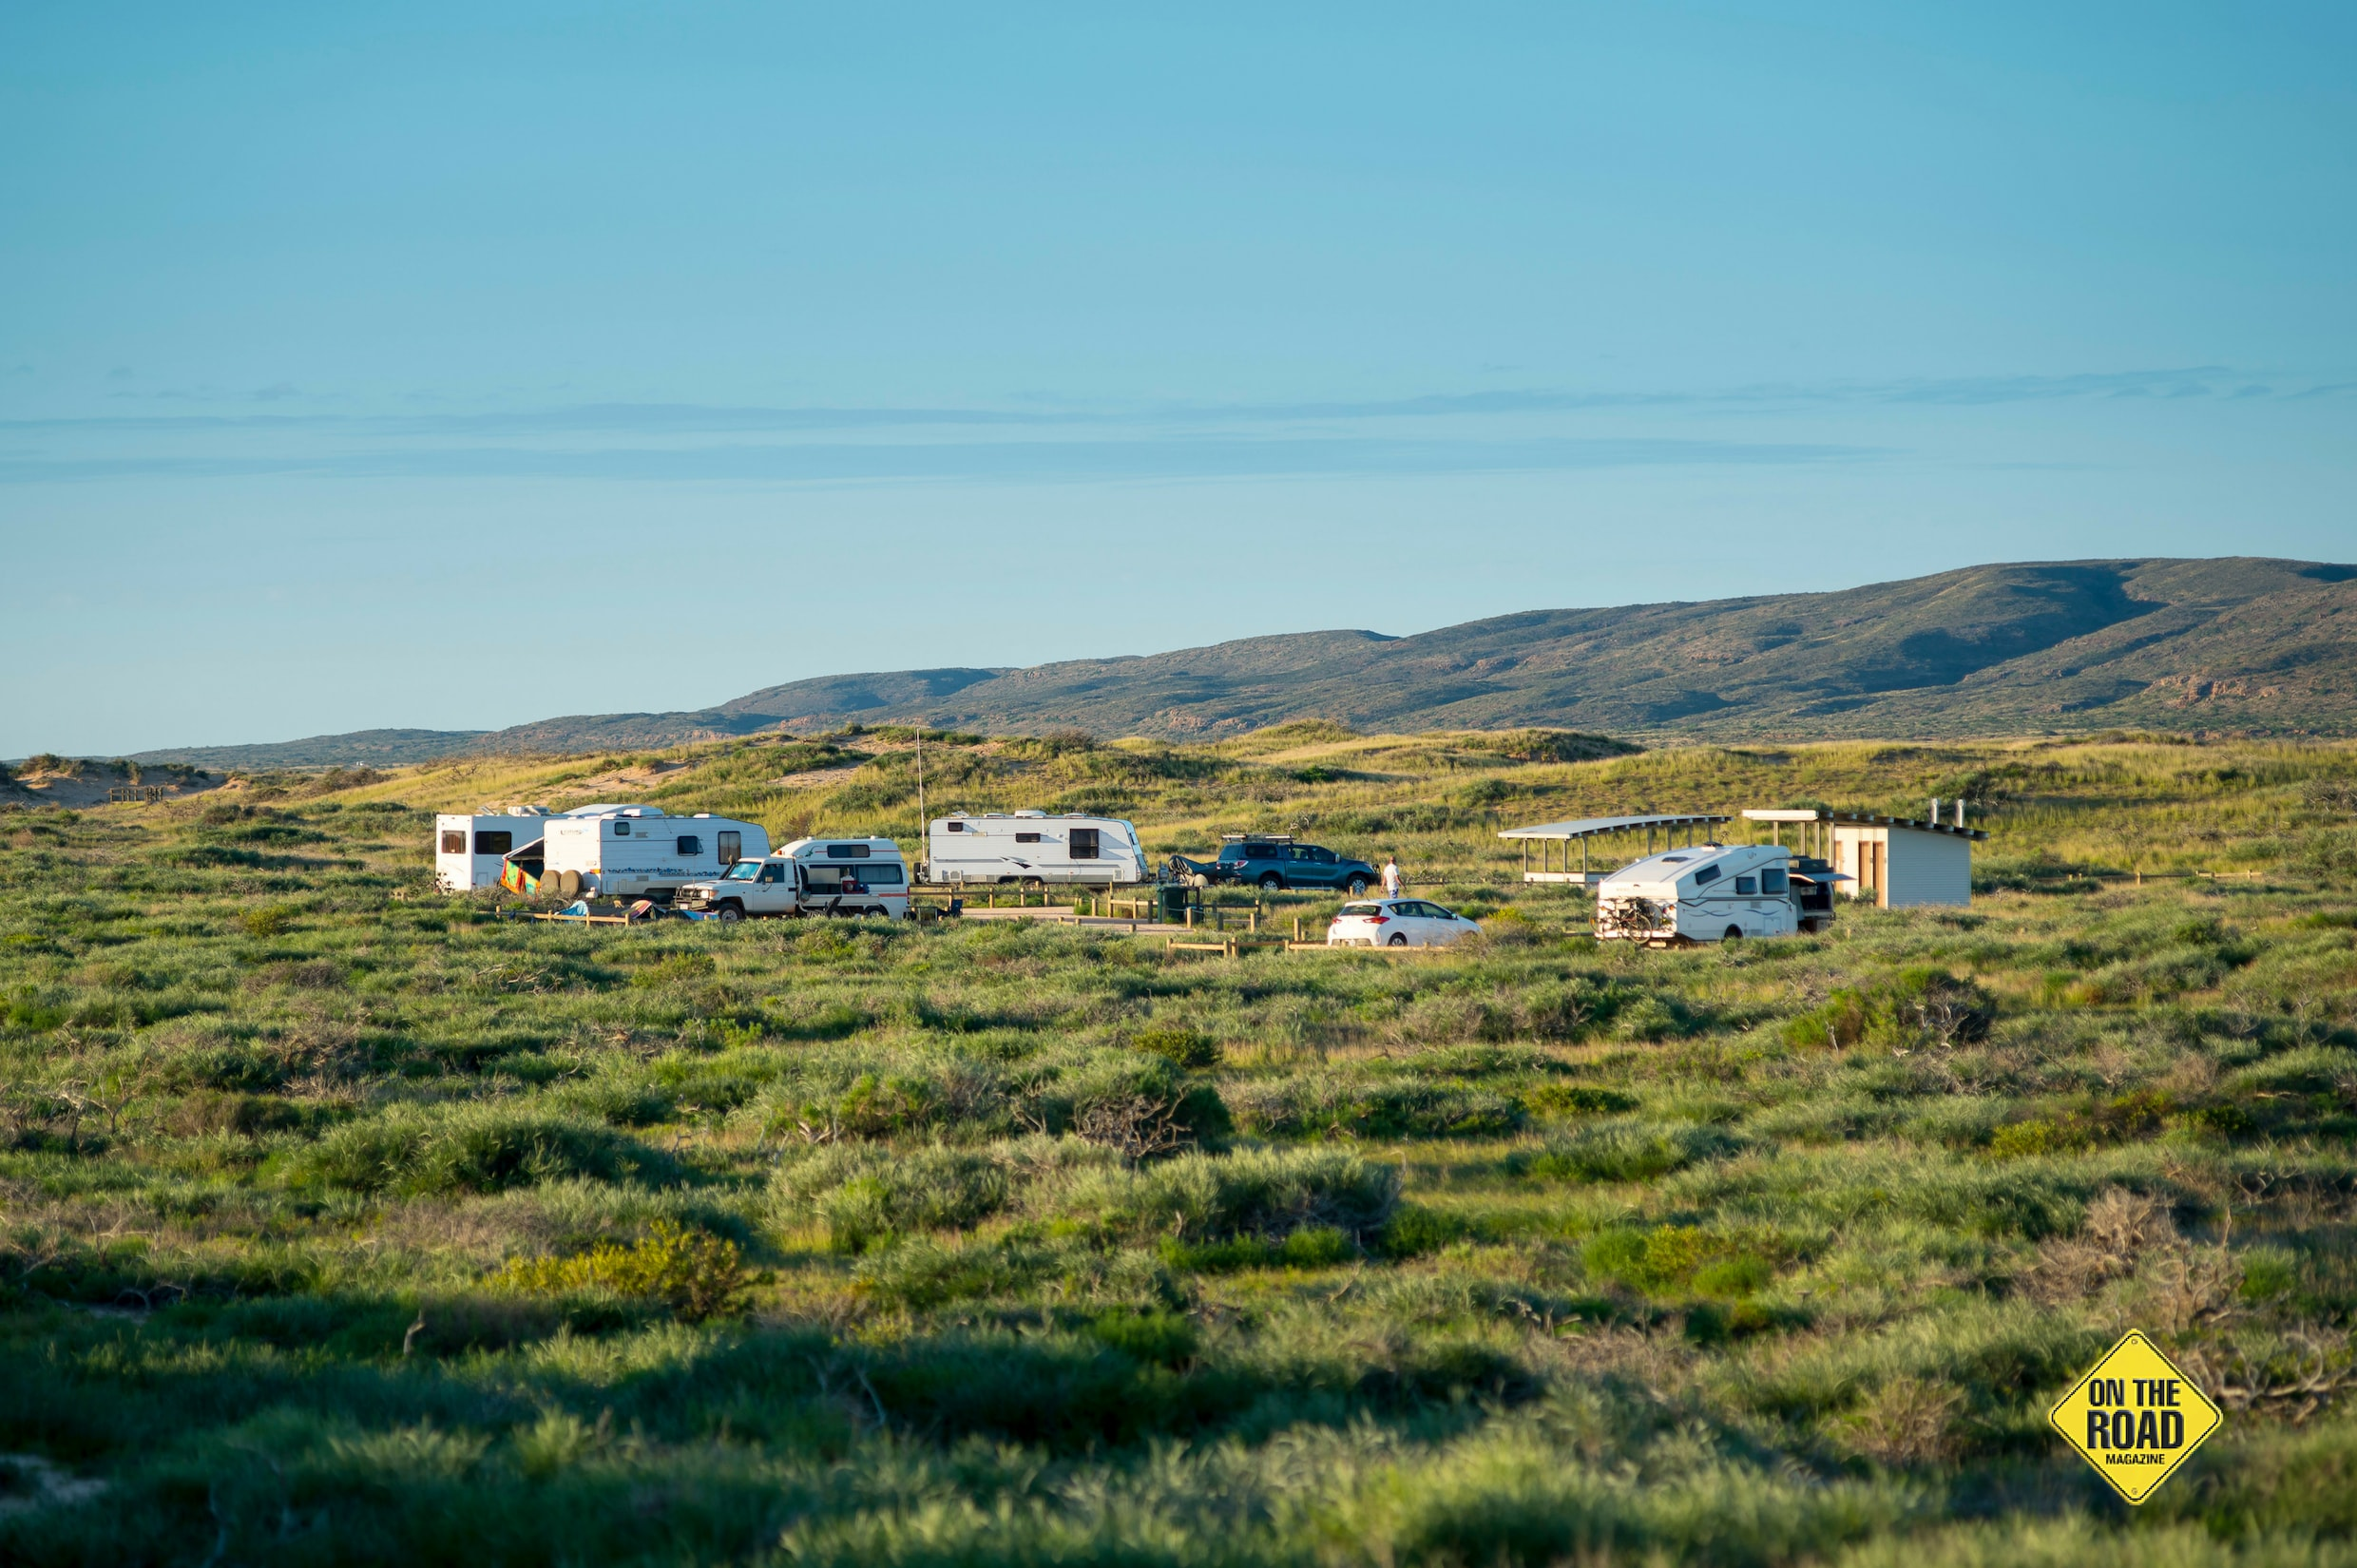 Coastal camps in Cape Range National Park offer easy access to Turquoise Bay